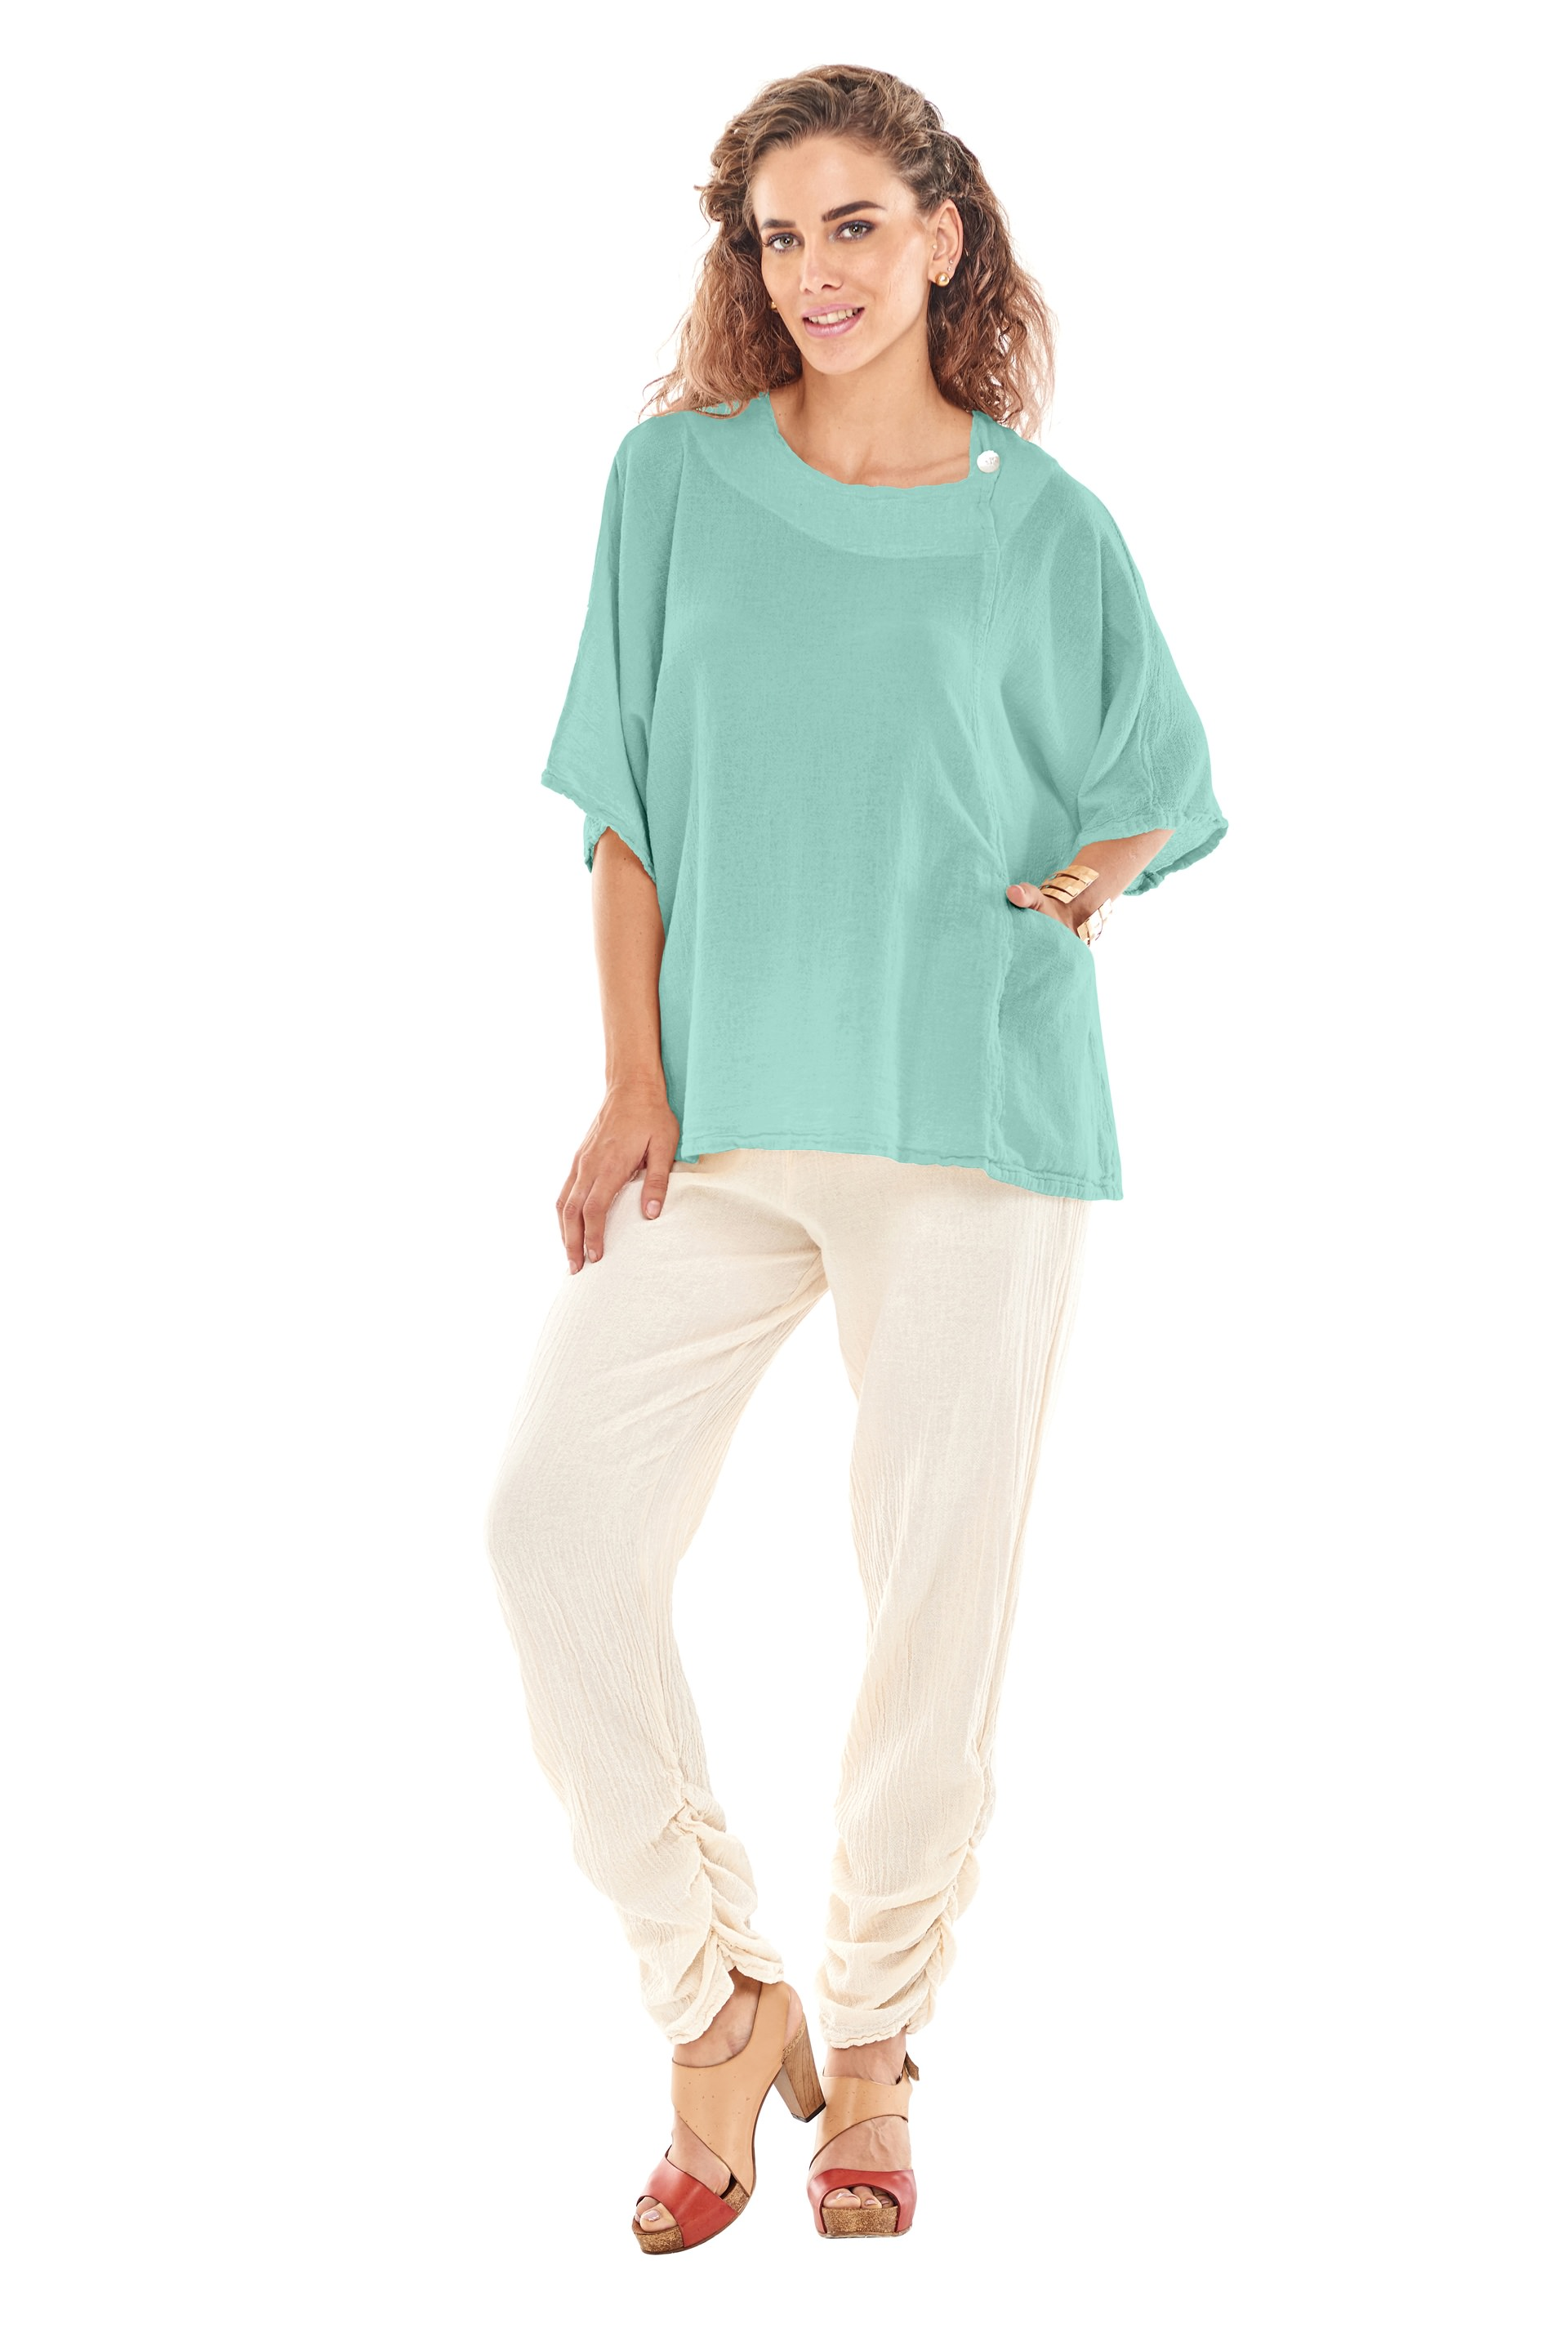 Top 100 Cute Girls Hairstyles: Oh My Gauze Athena Blouse Tunic Top 100% Cotton Lagenlook